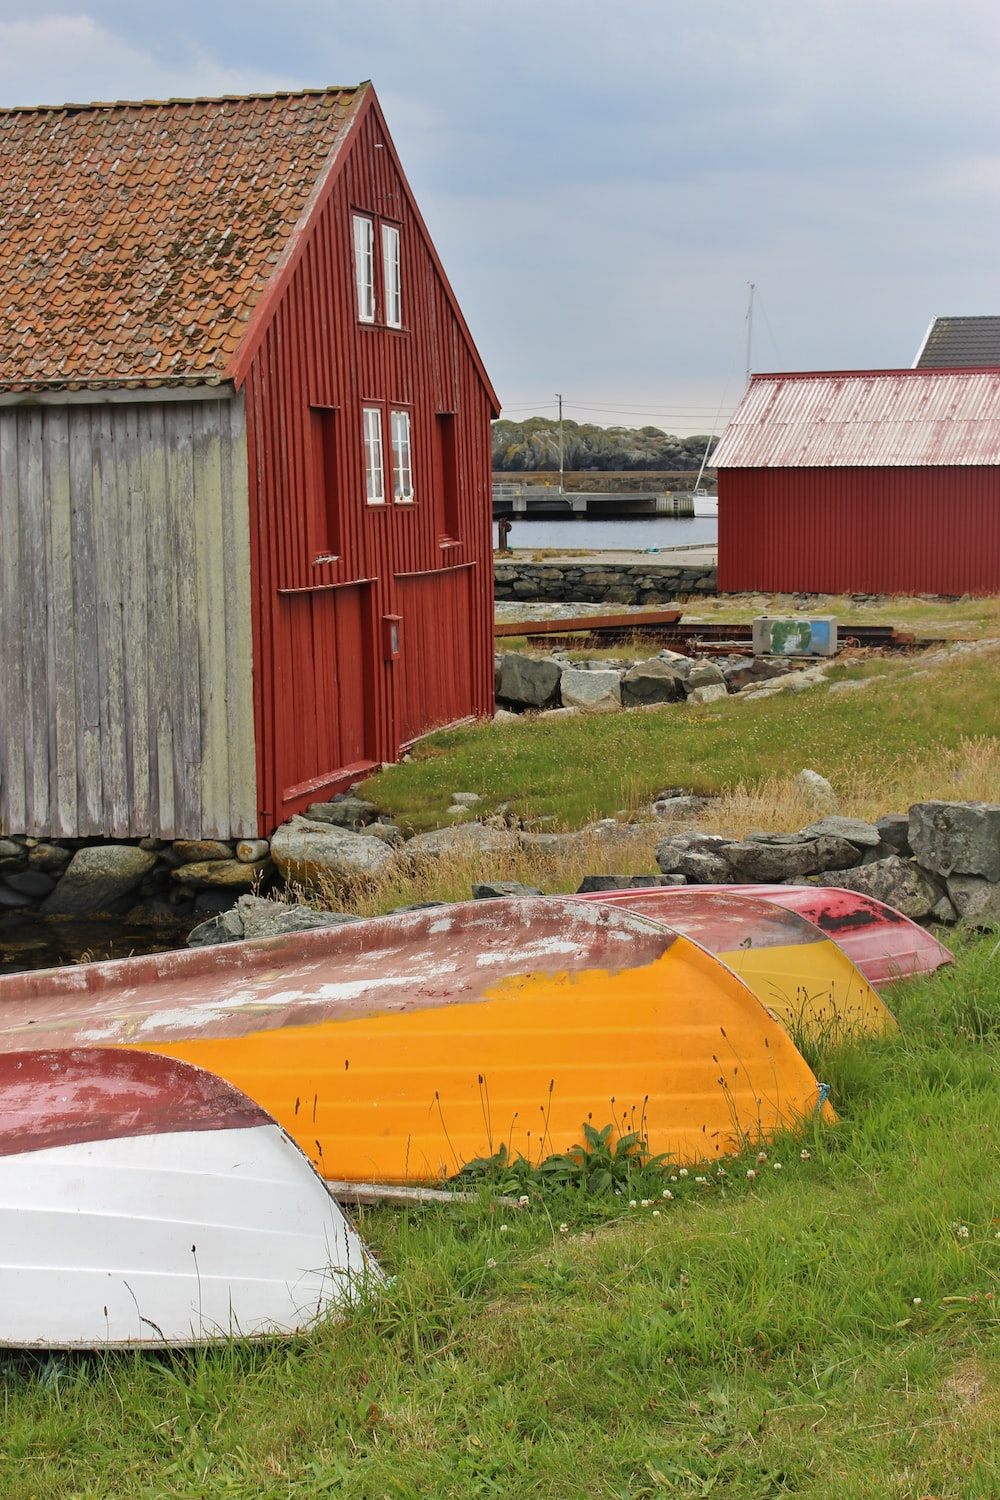 boats and buildings on grass field during day